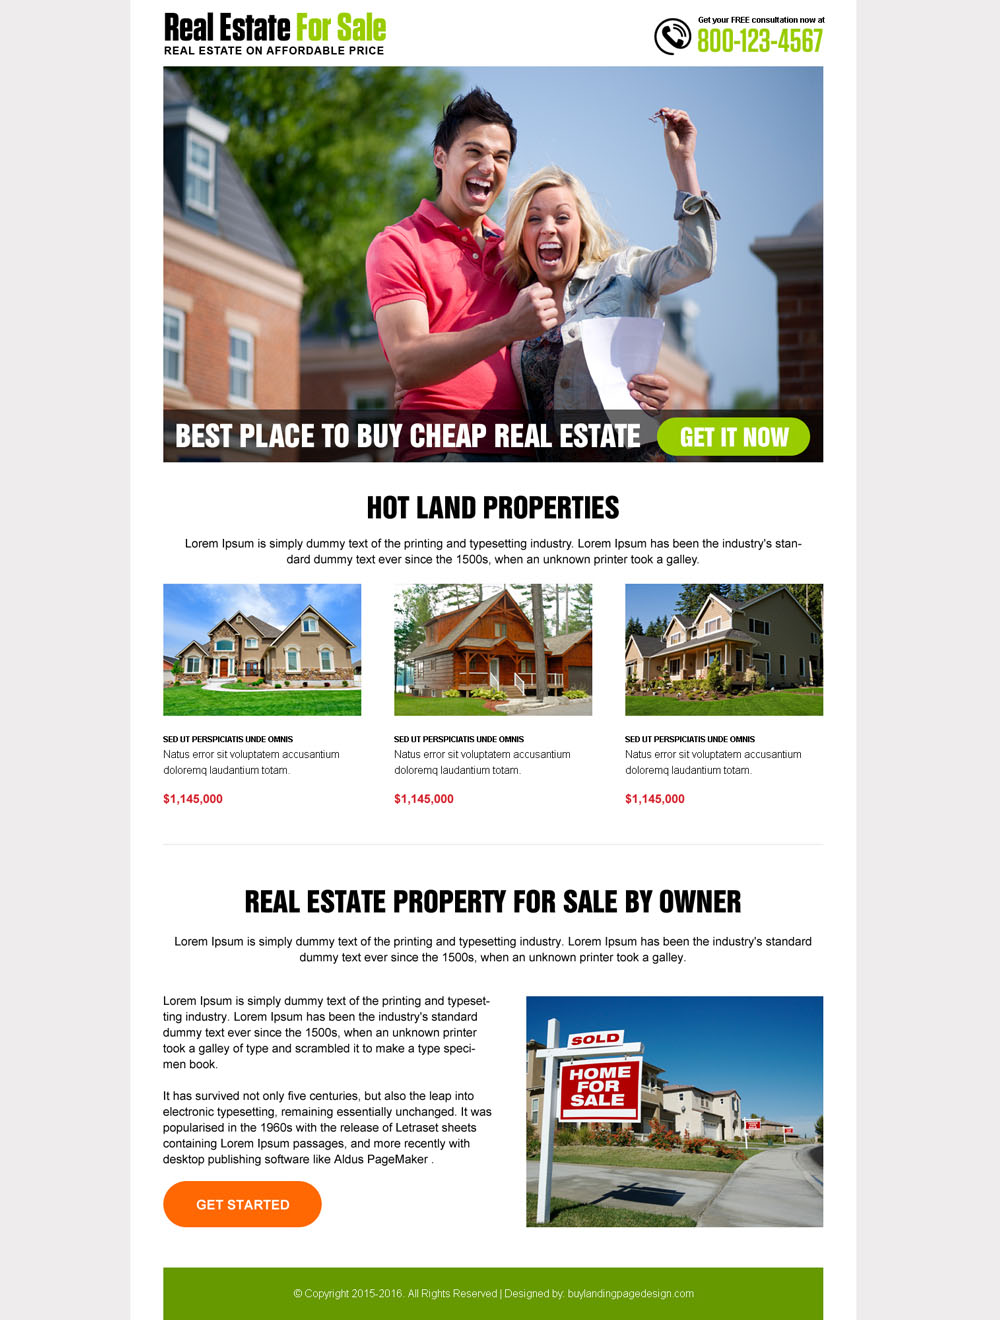 best-real-estate-for-sale-high-converting-landing-page-templates-017